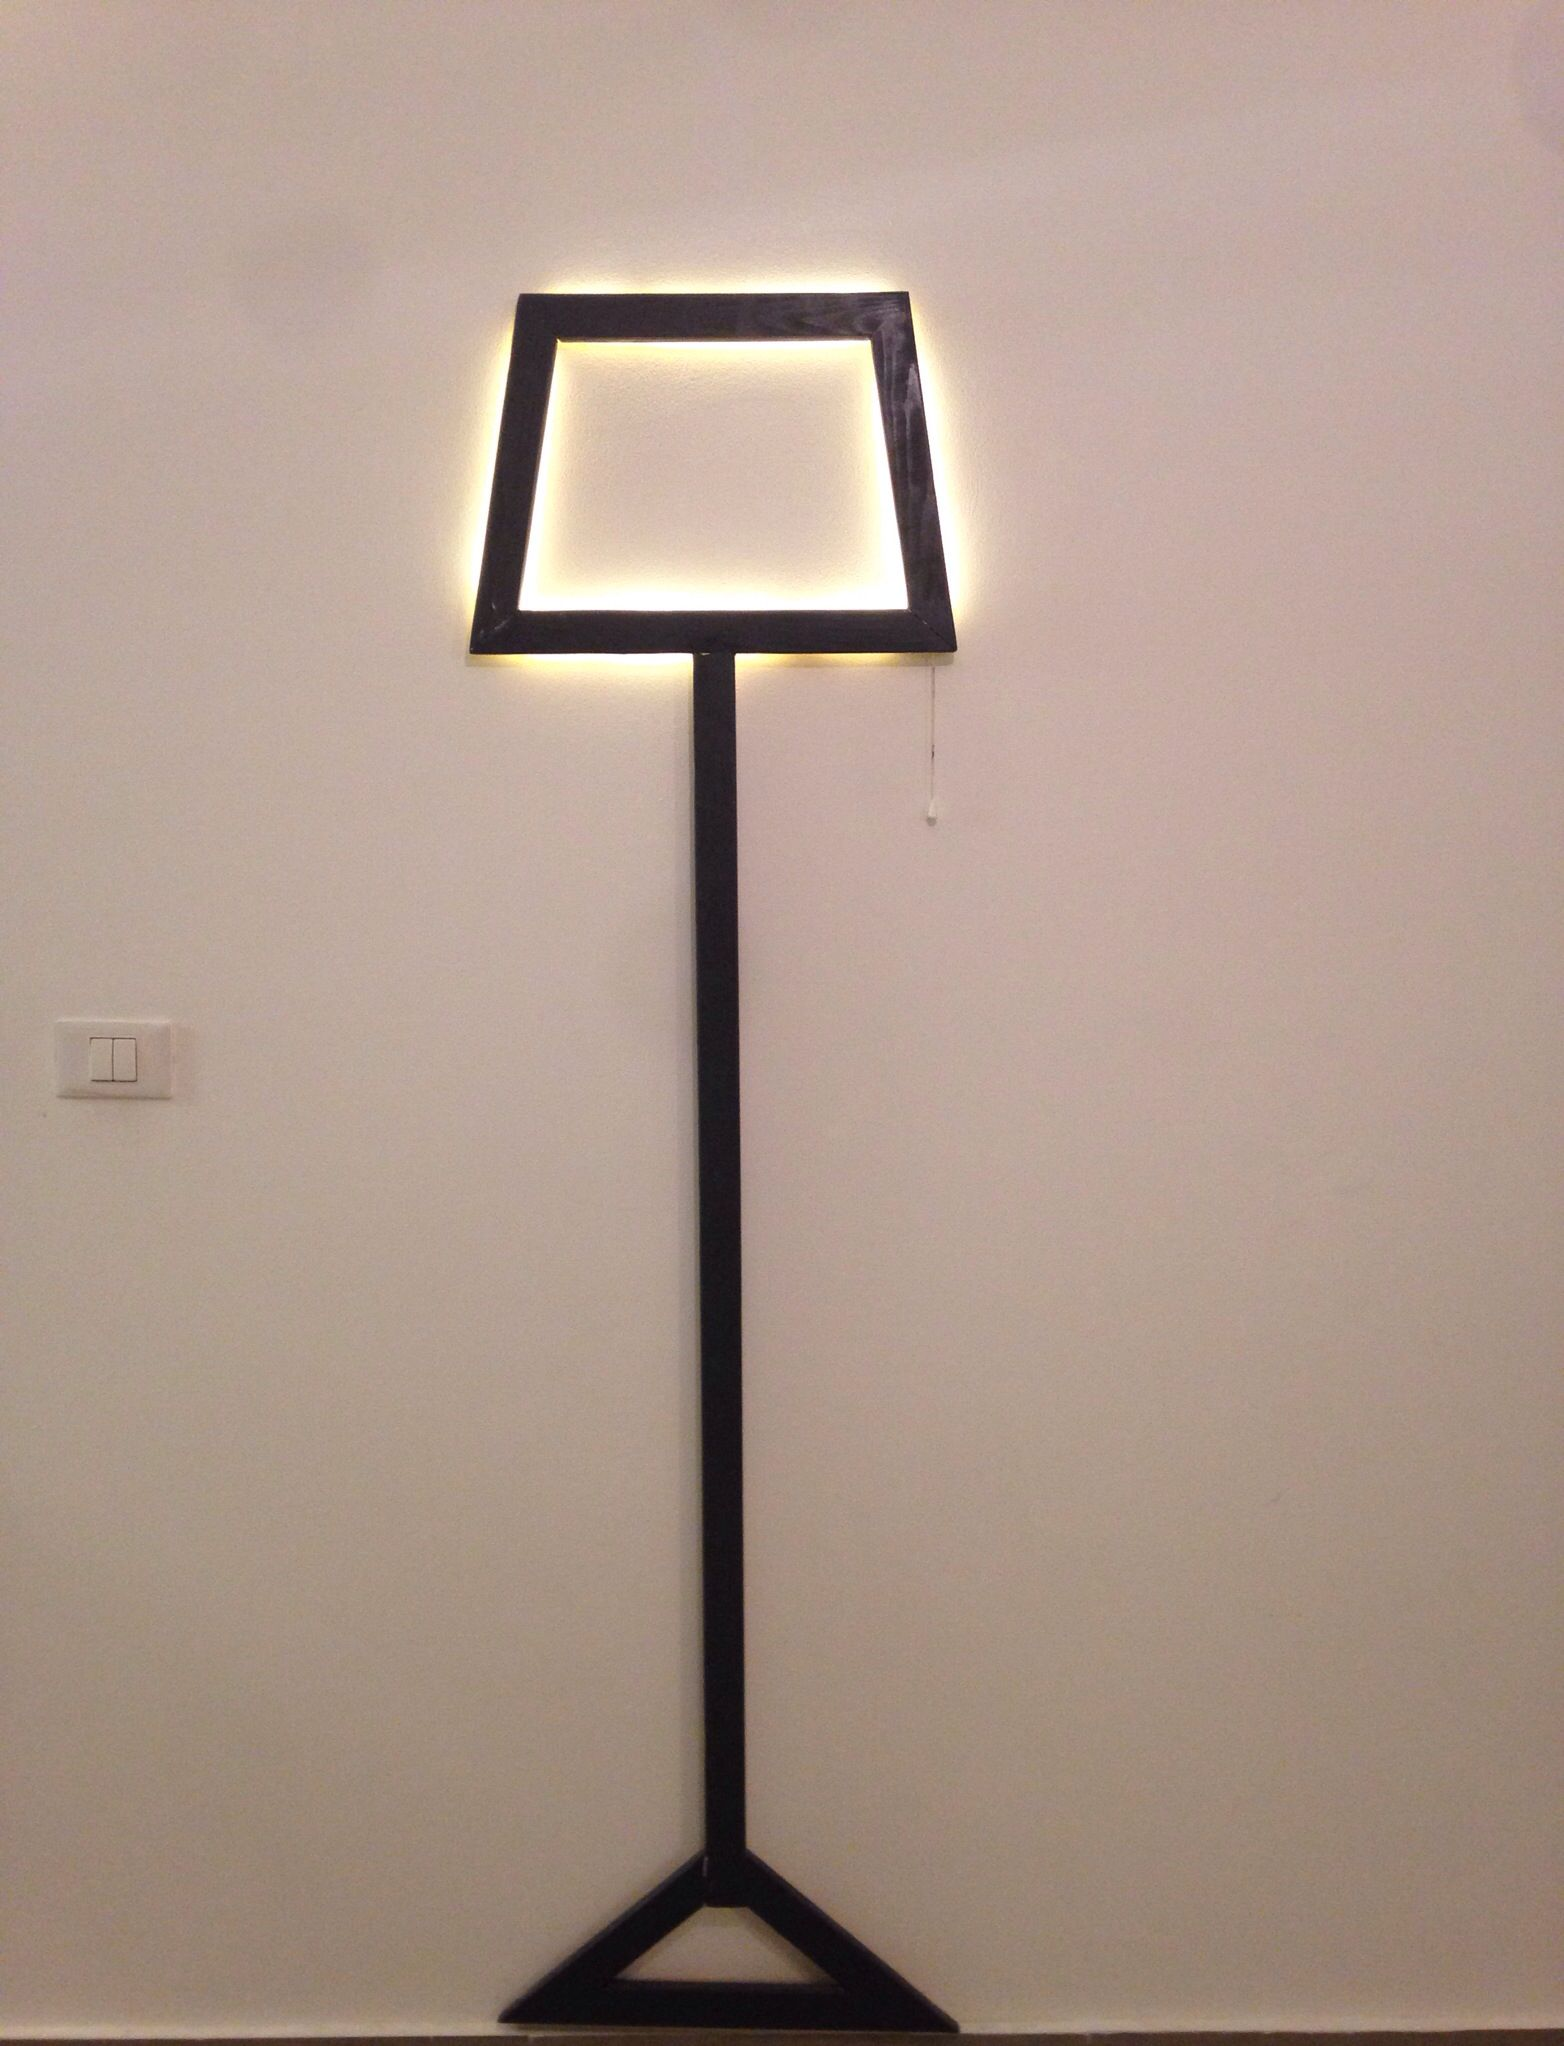 2d Led Lamp That We Build For The New House Lamp Table Lamp Led Lamp